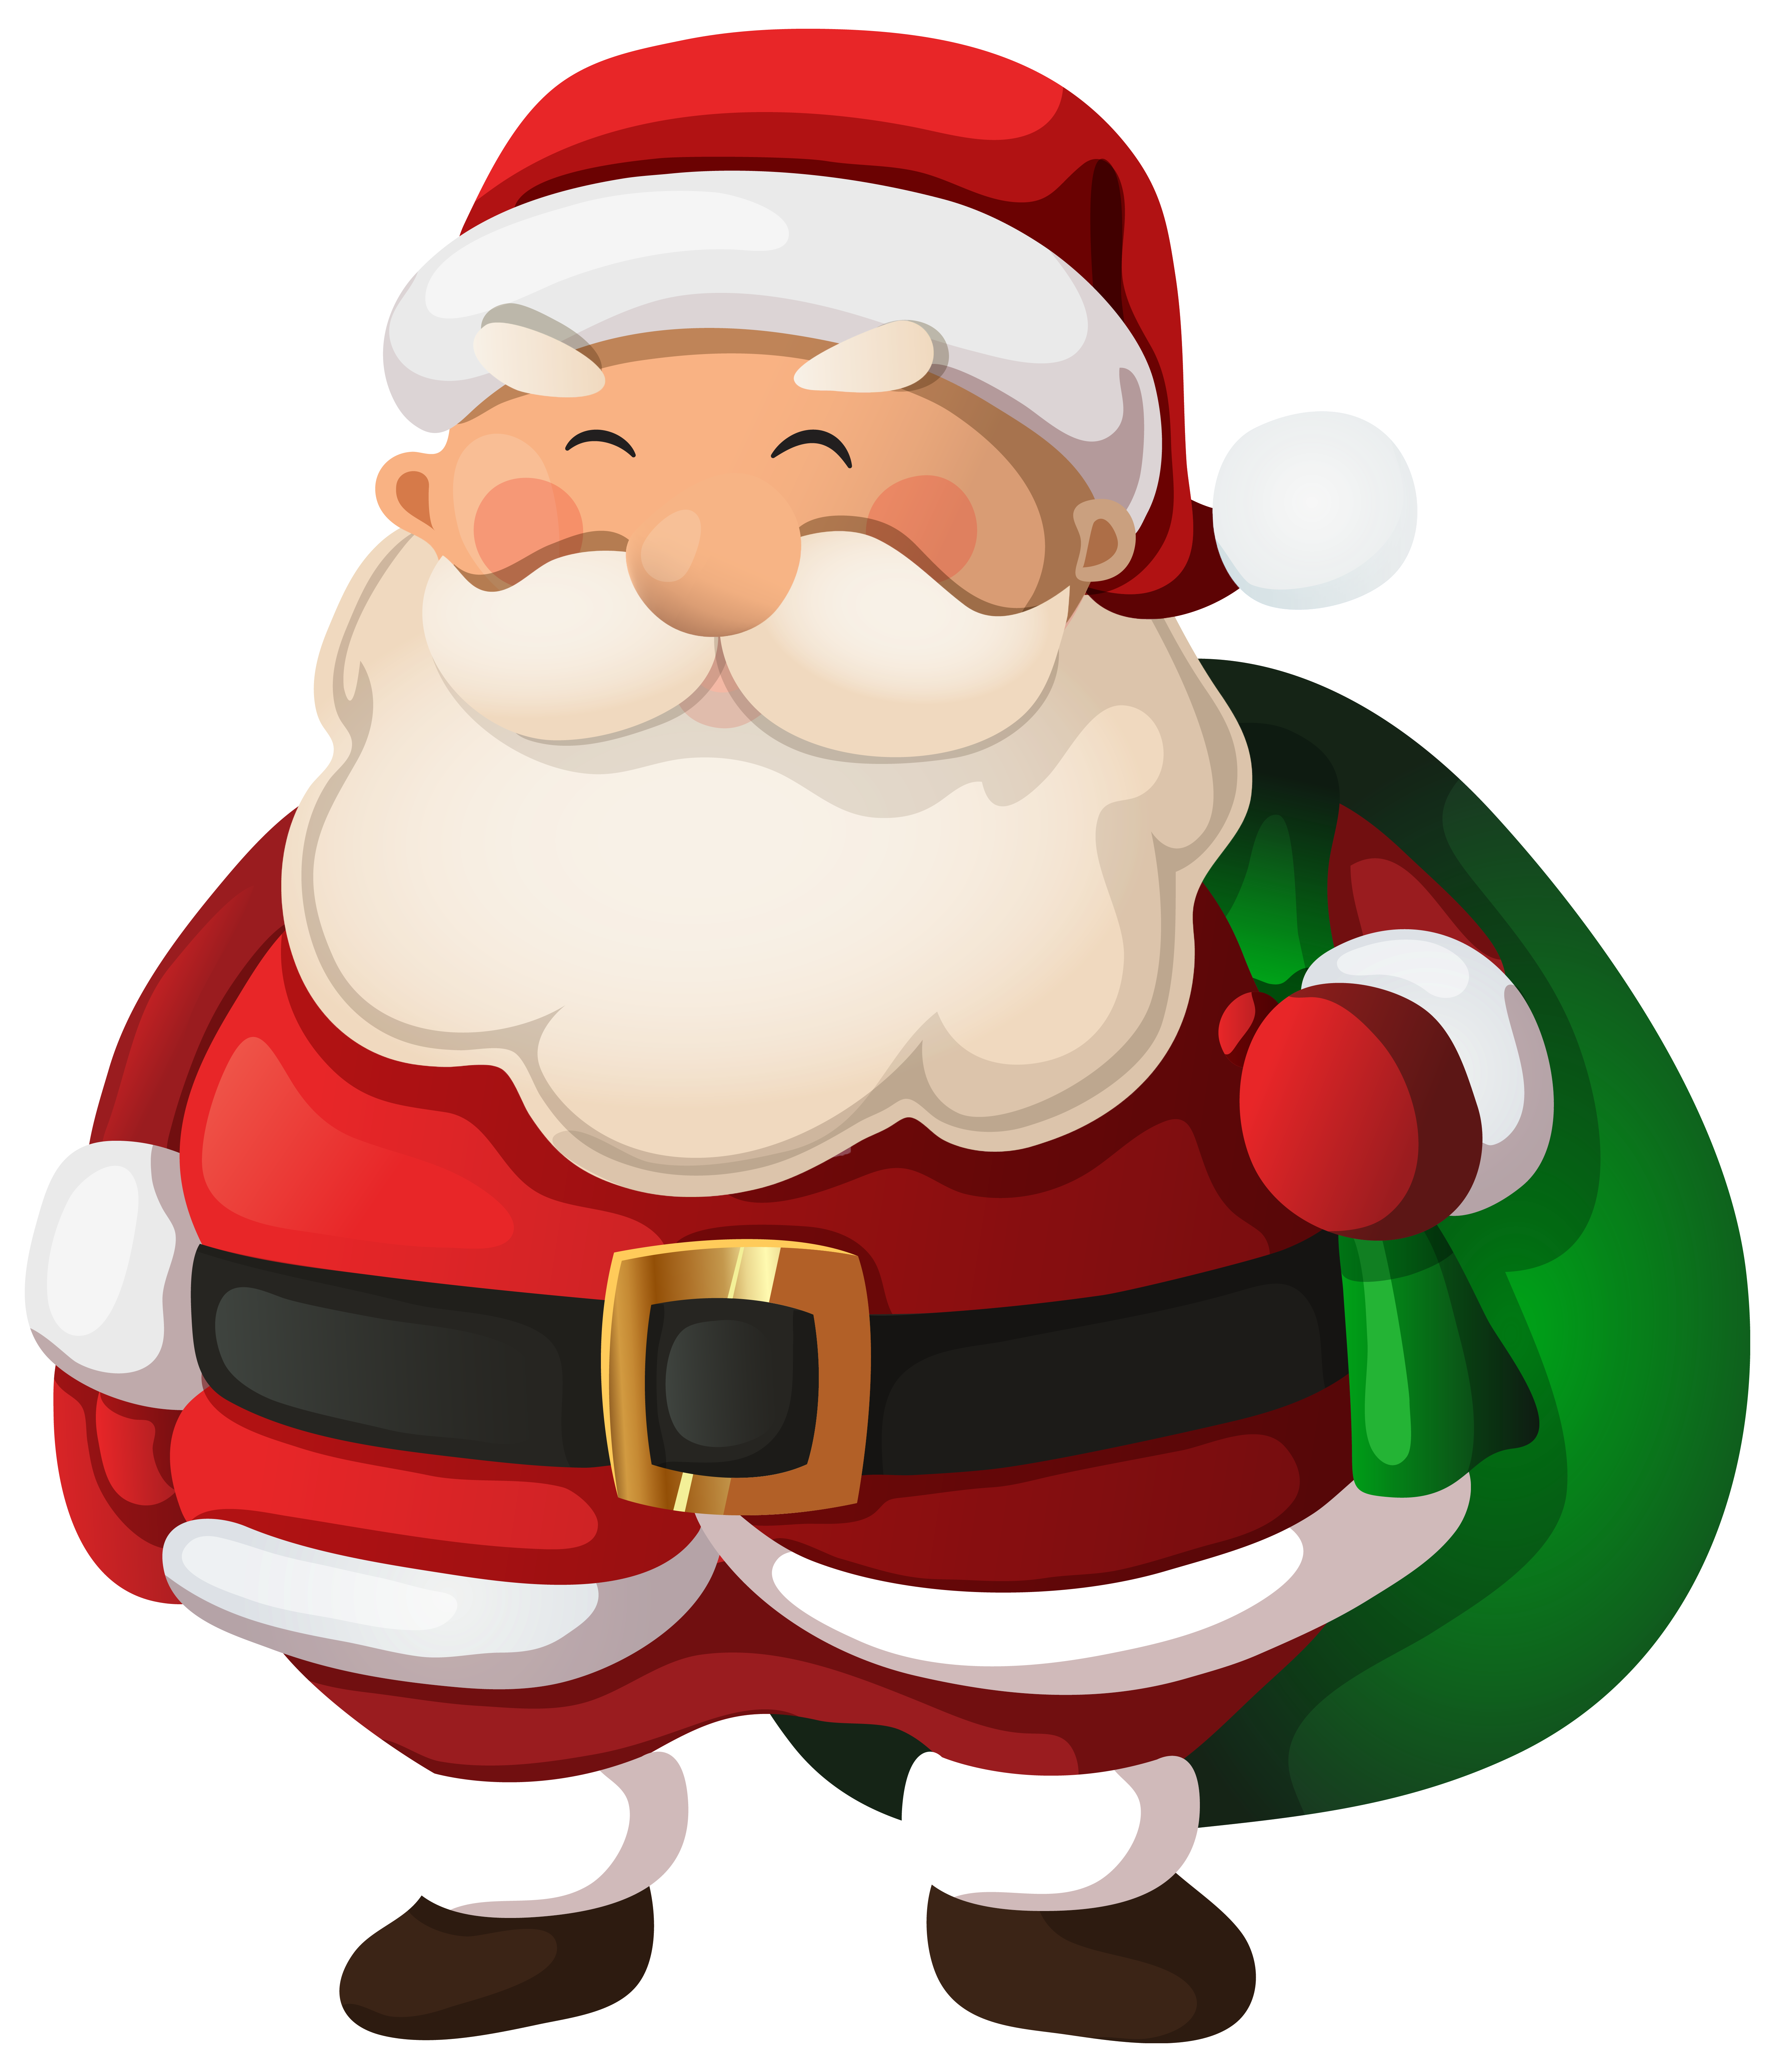 Santa clip art png. Claus image gallery yopriceville